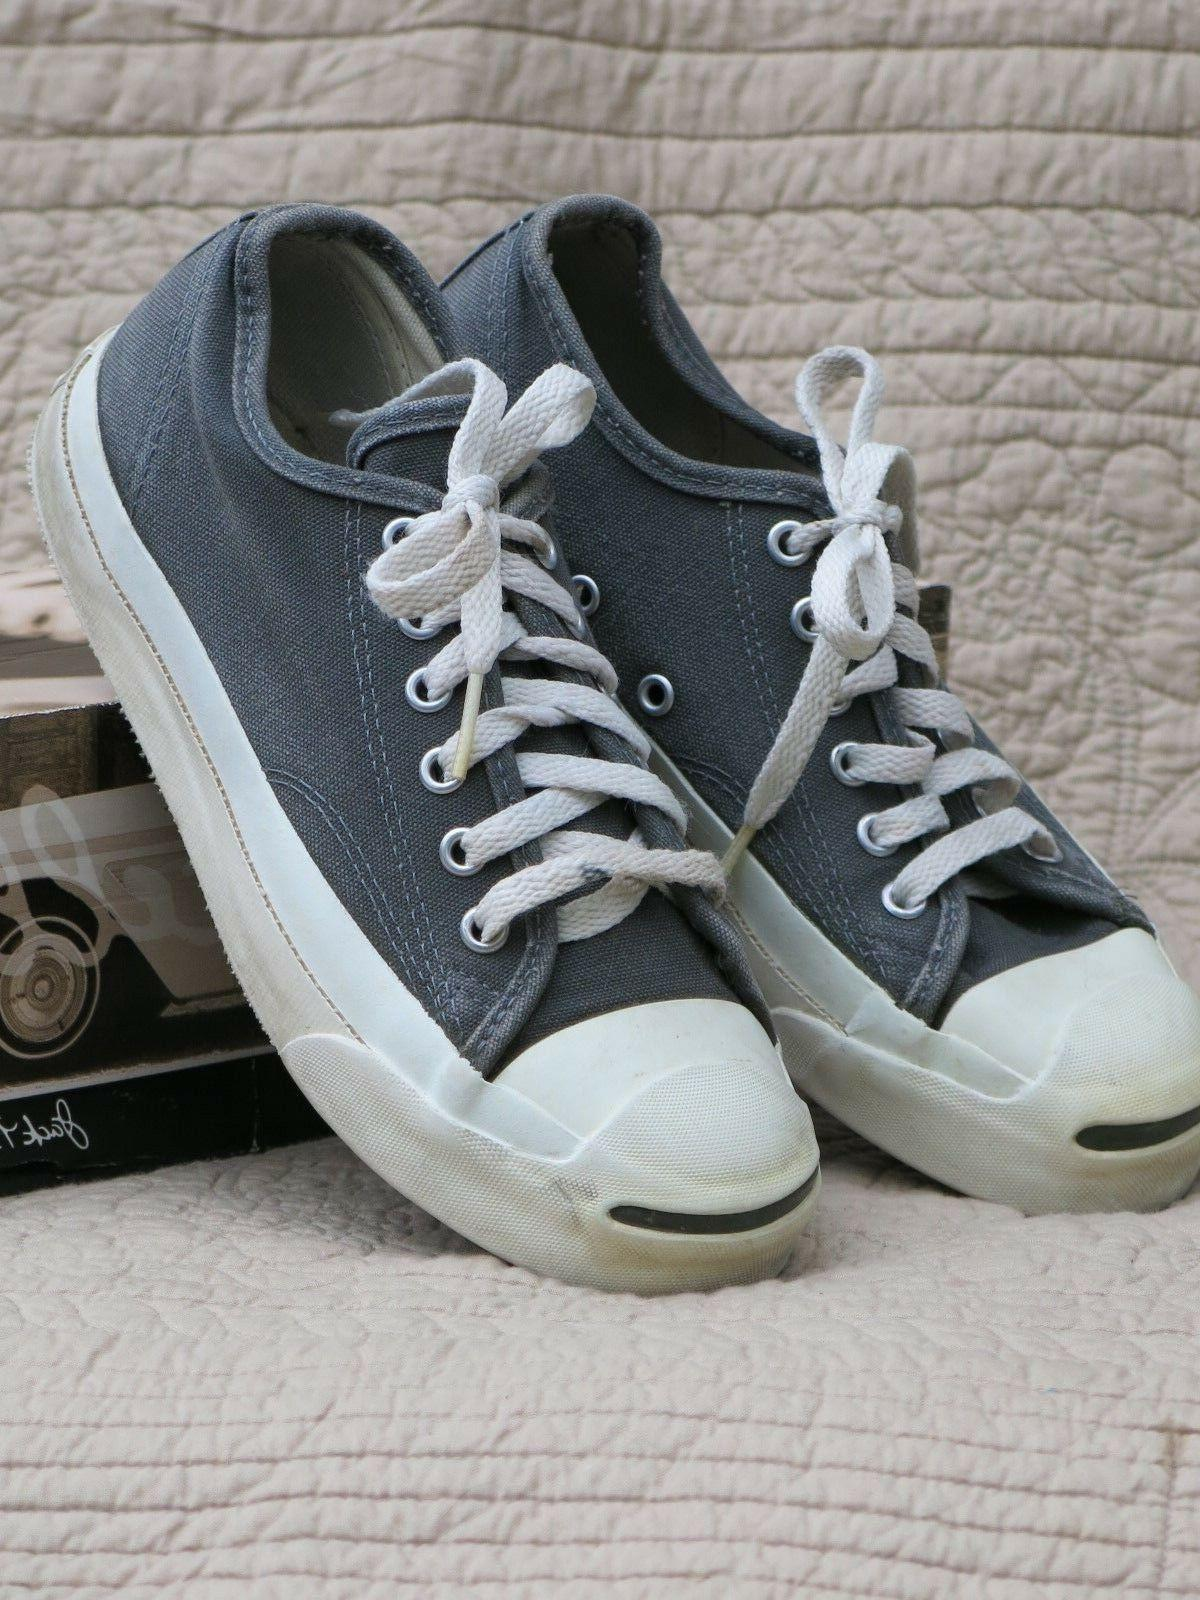 jack purcell tennis shoes made u s